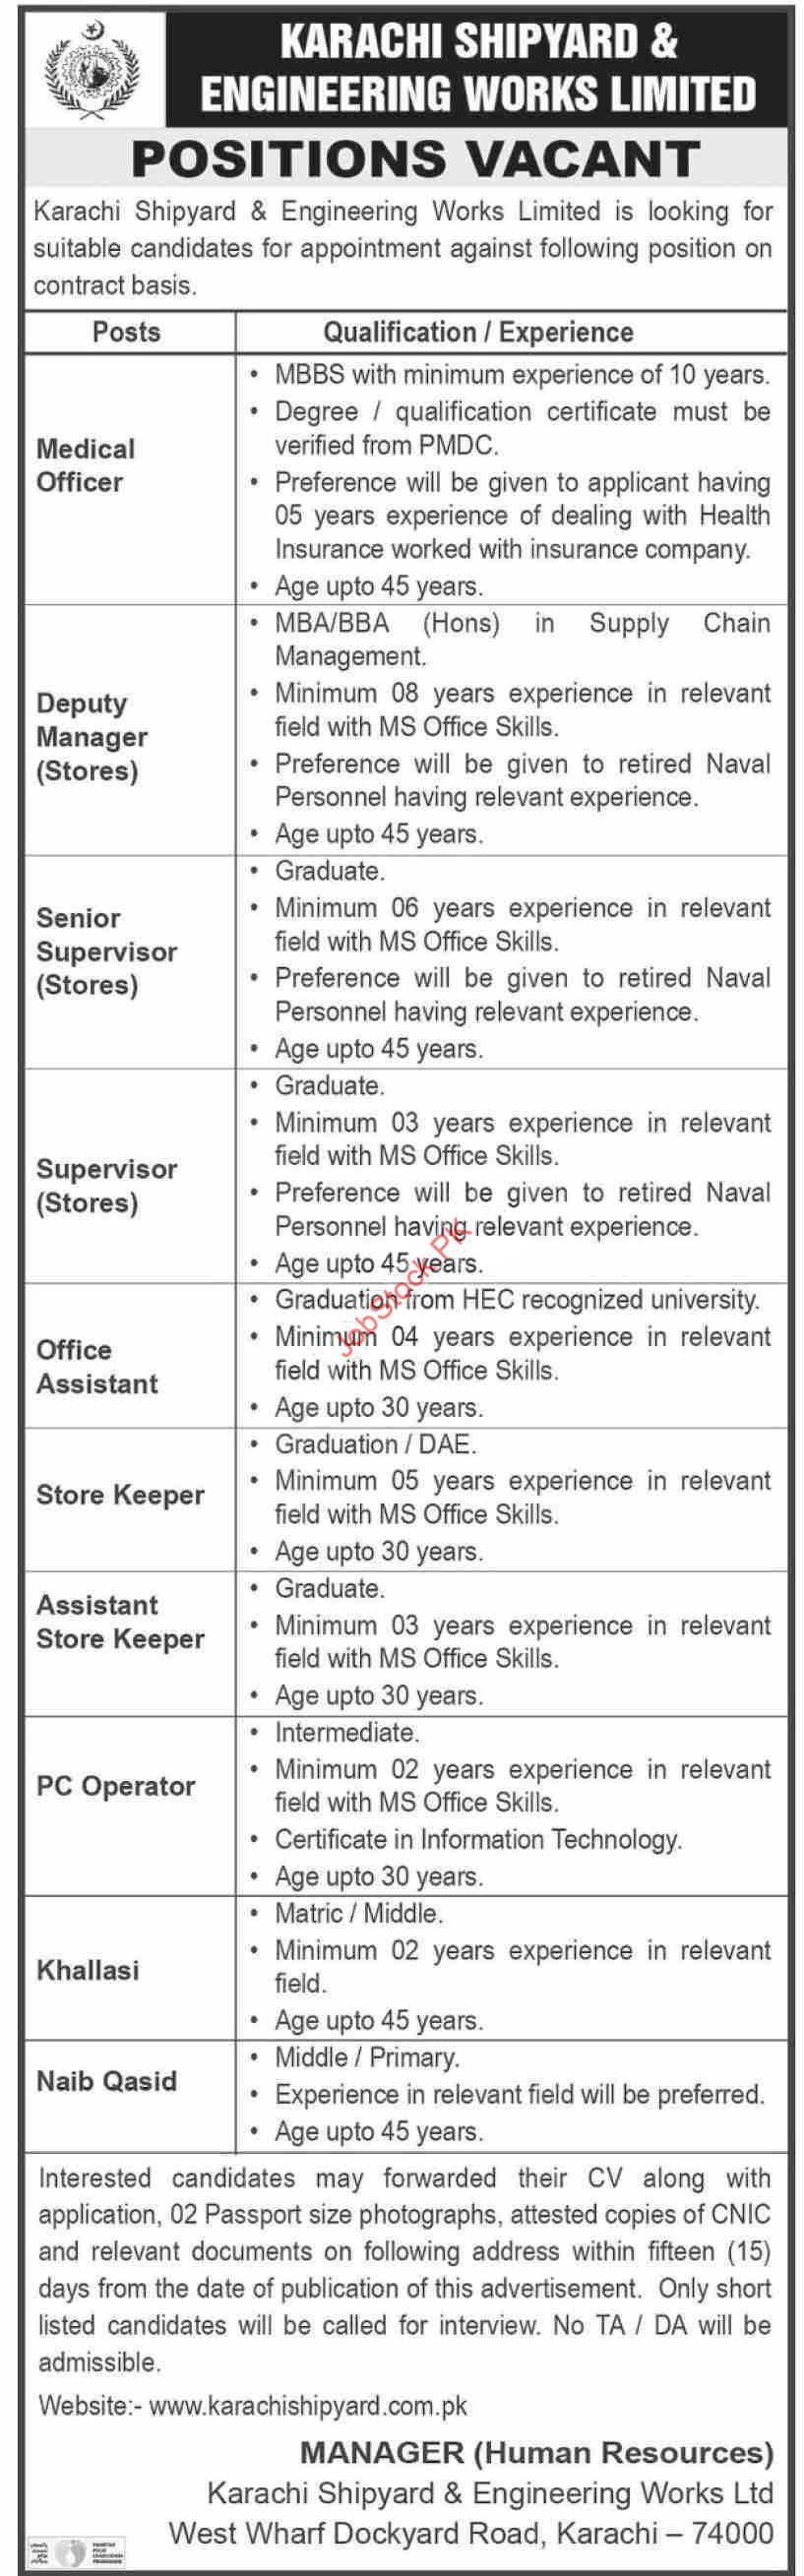 Karachi Shipyard And Engineering Works Ltd Jobs 2021